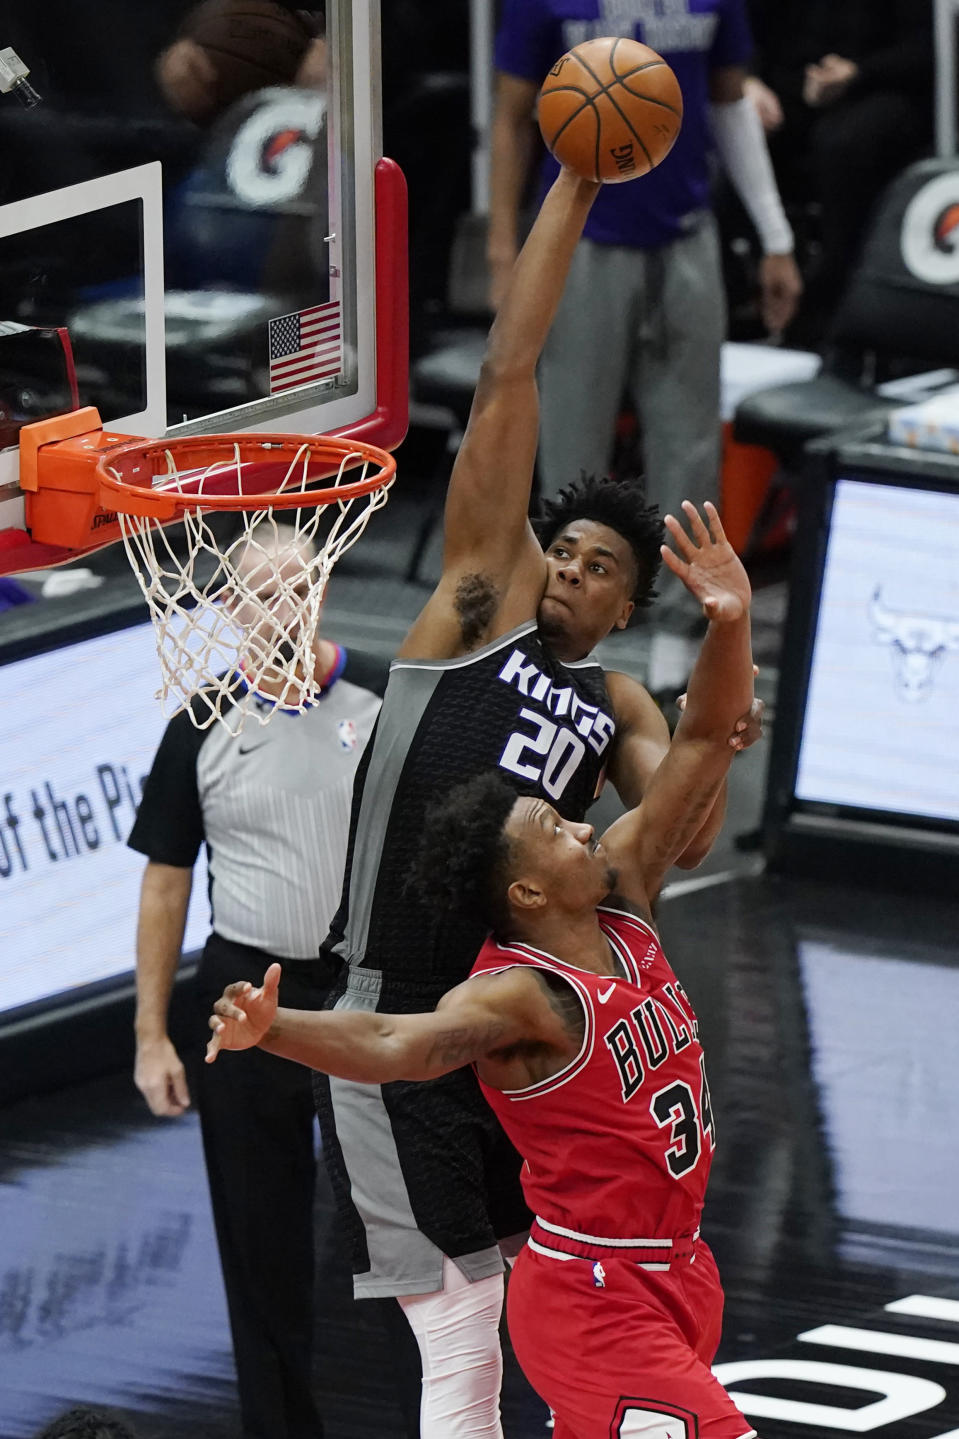 Sacramento Kings center Hassan Whiteside, top, goes up for a dunk against Chicago Bulls center Wendell Carter Jr., during the first half of an NBA basketball game in Chicago, Saturday, Feb. 20, 2021. (AP Photo/Nam Y. Huh)